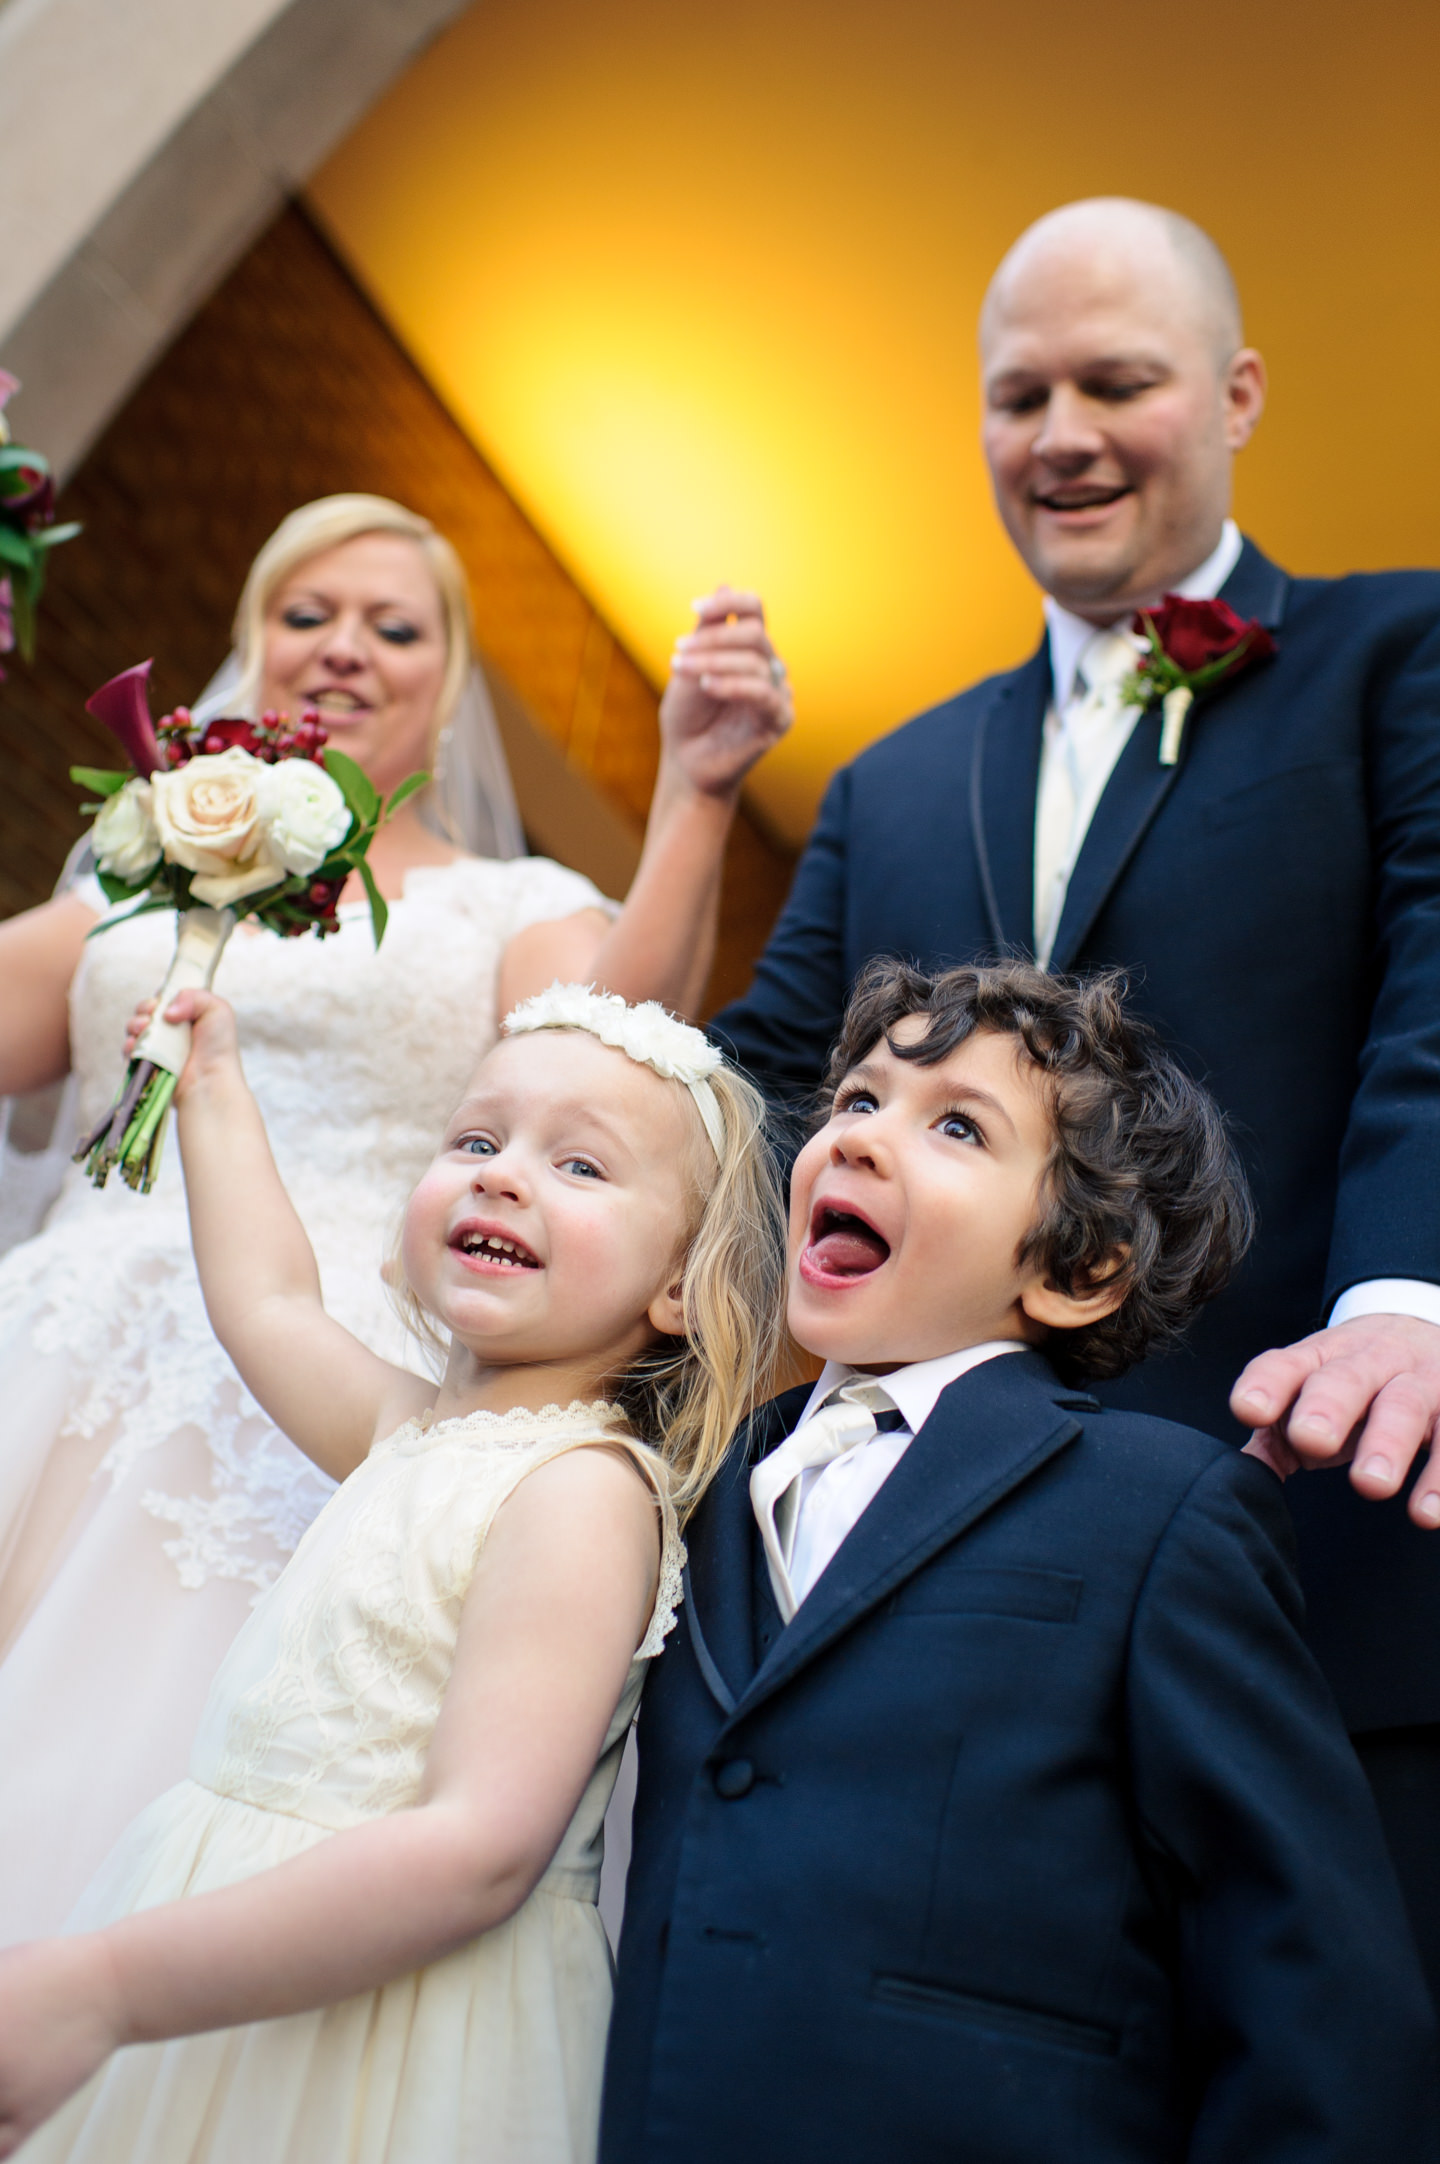 Laughing Kids and Bride and Groom